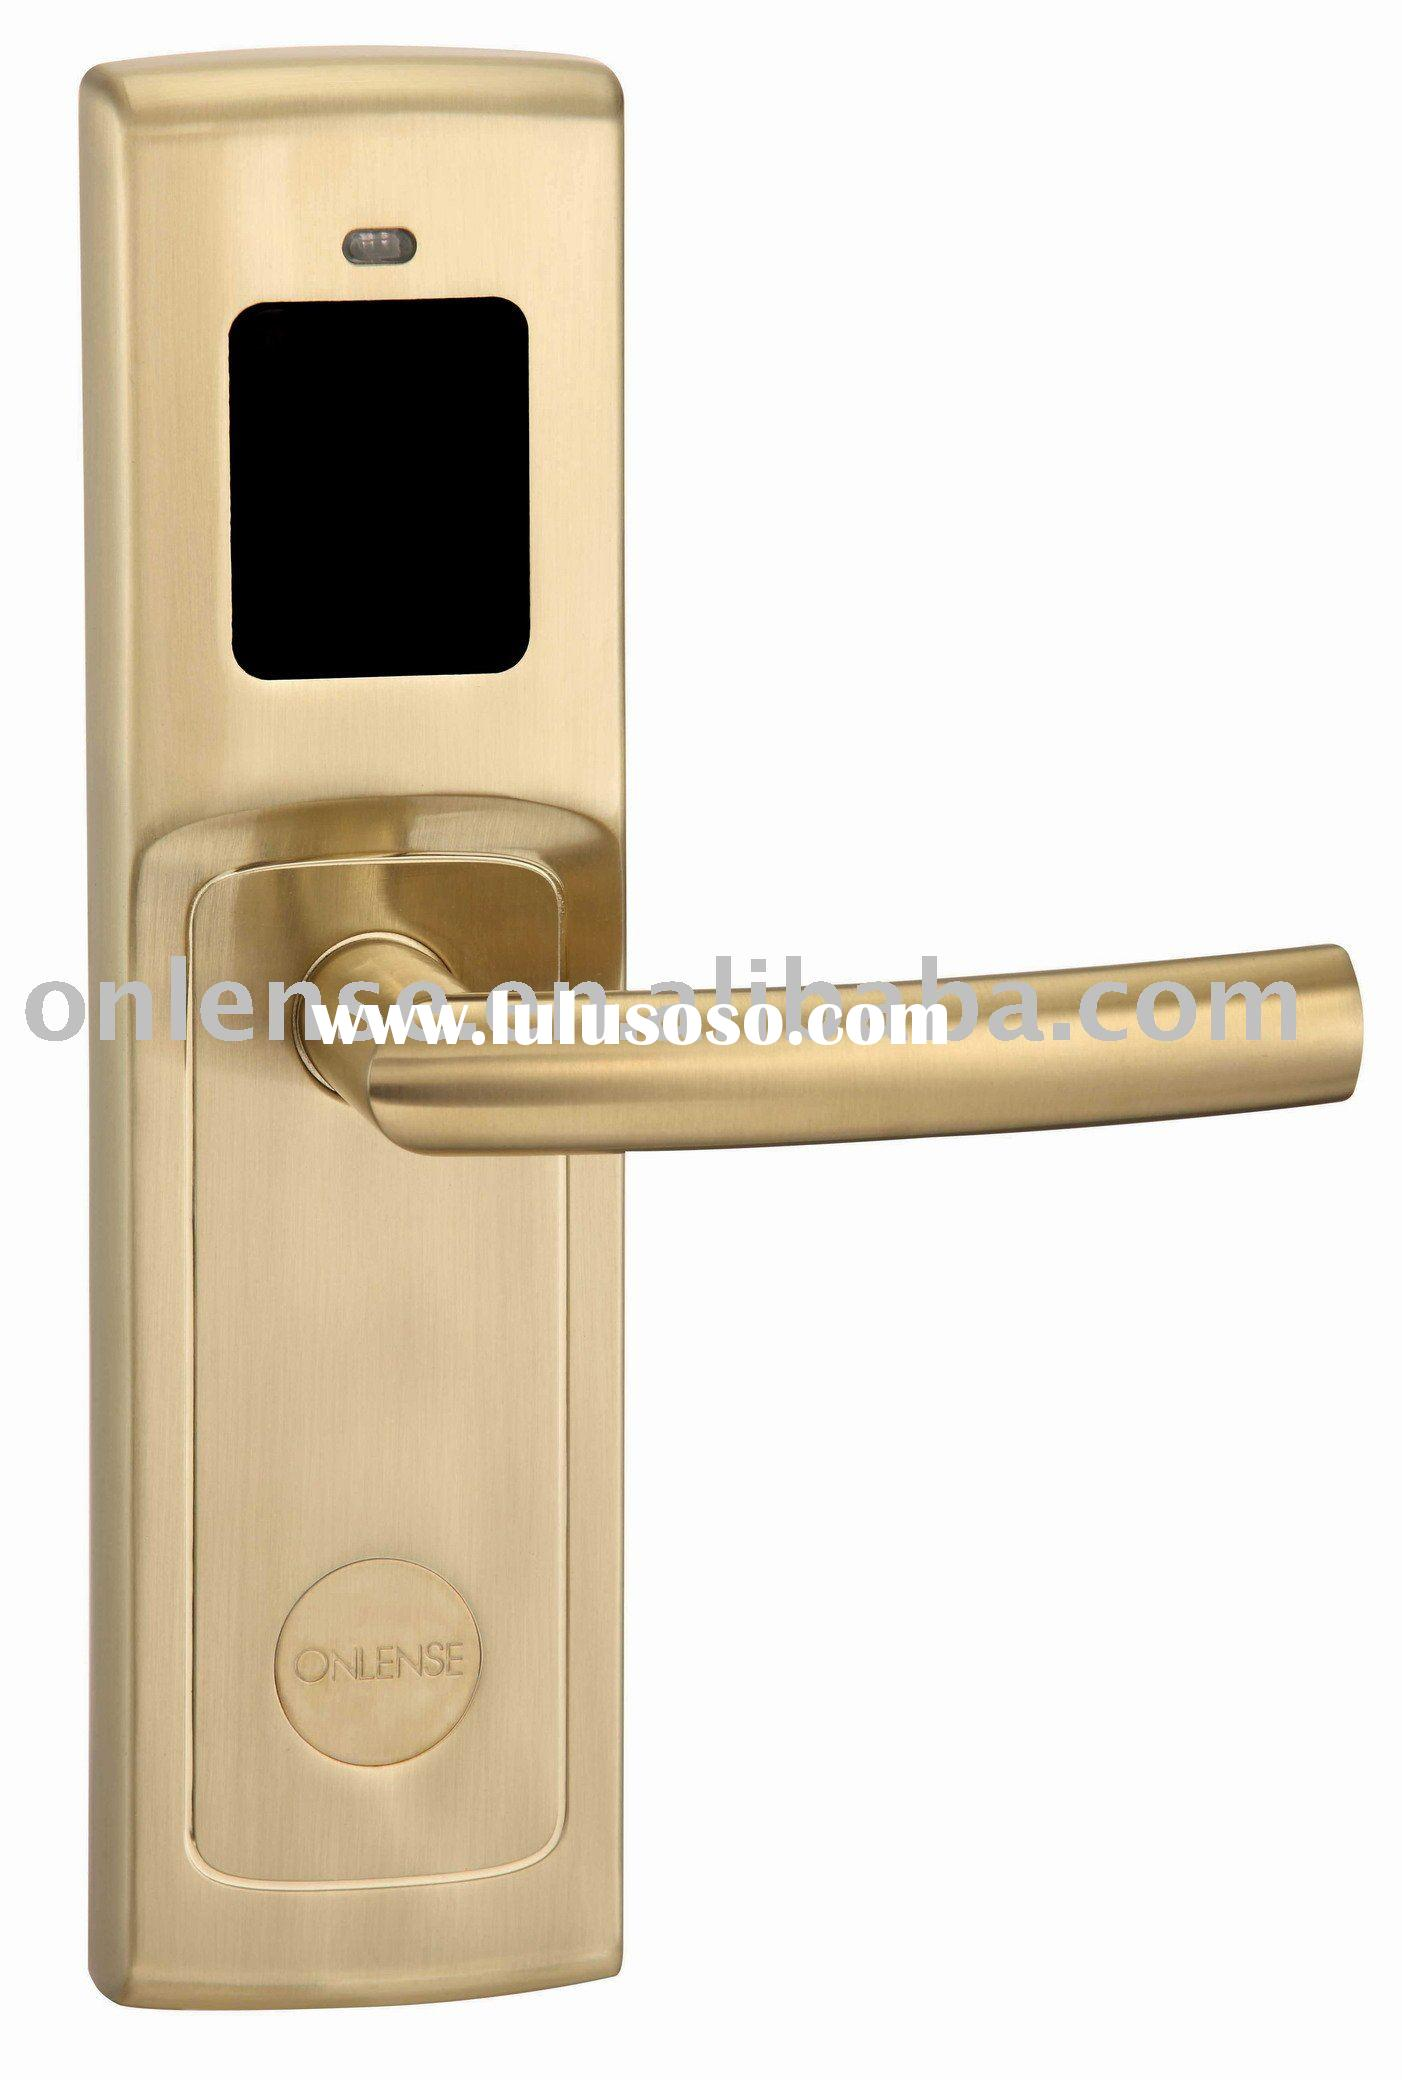 manufacturer for hotel lock OEM project in China